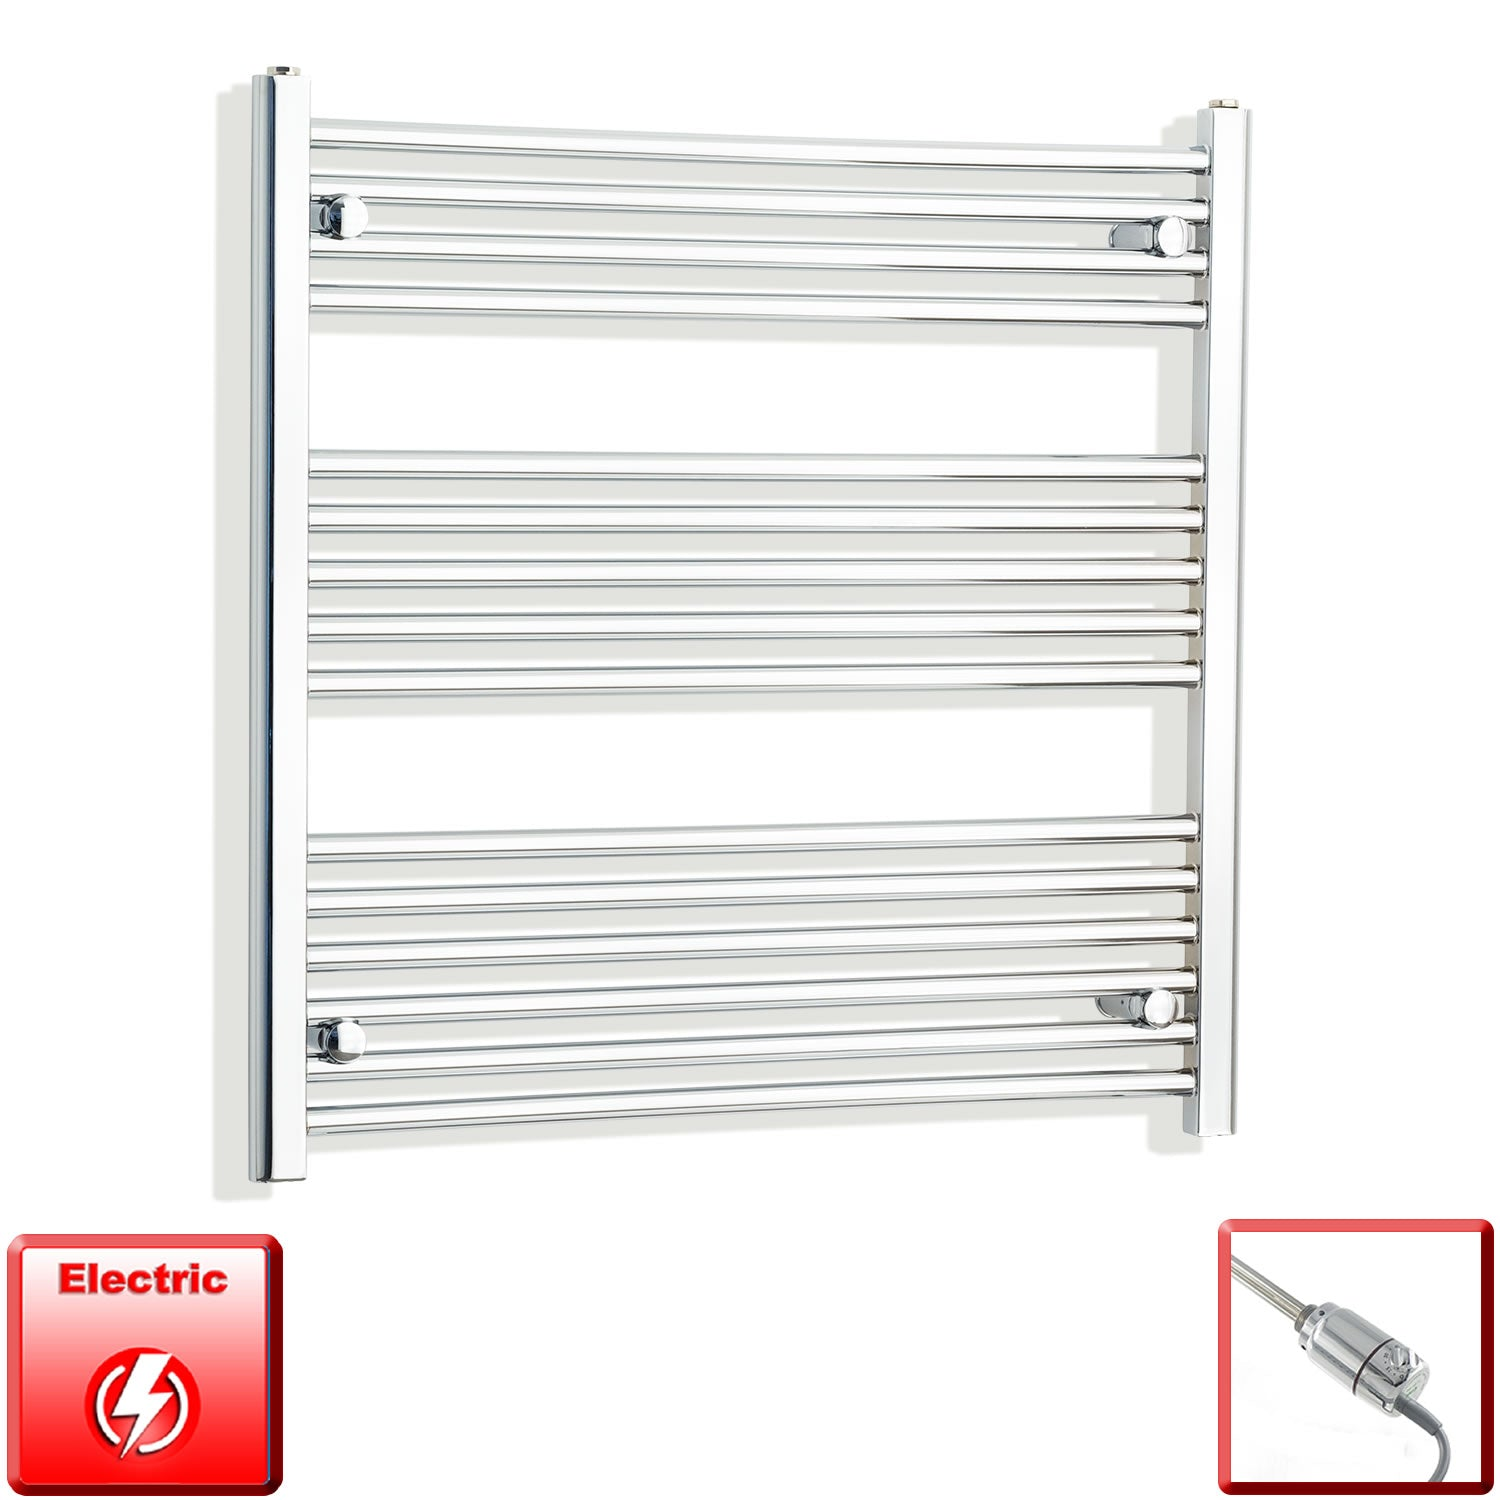 850mm Wide 800mm High Pre-Filled Chrome Electric Towel Rail Radiator With Thermostatic GT Element